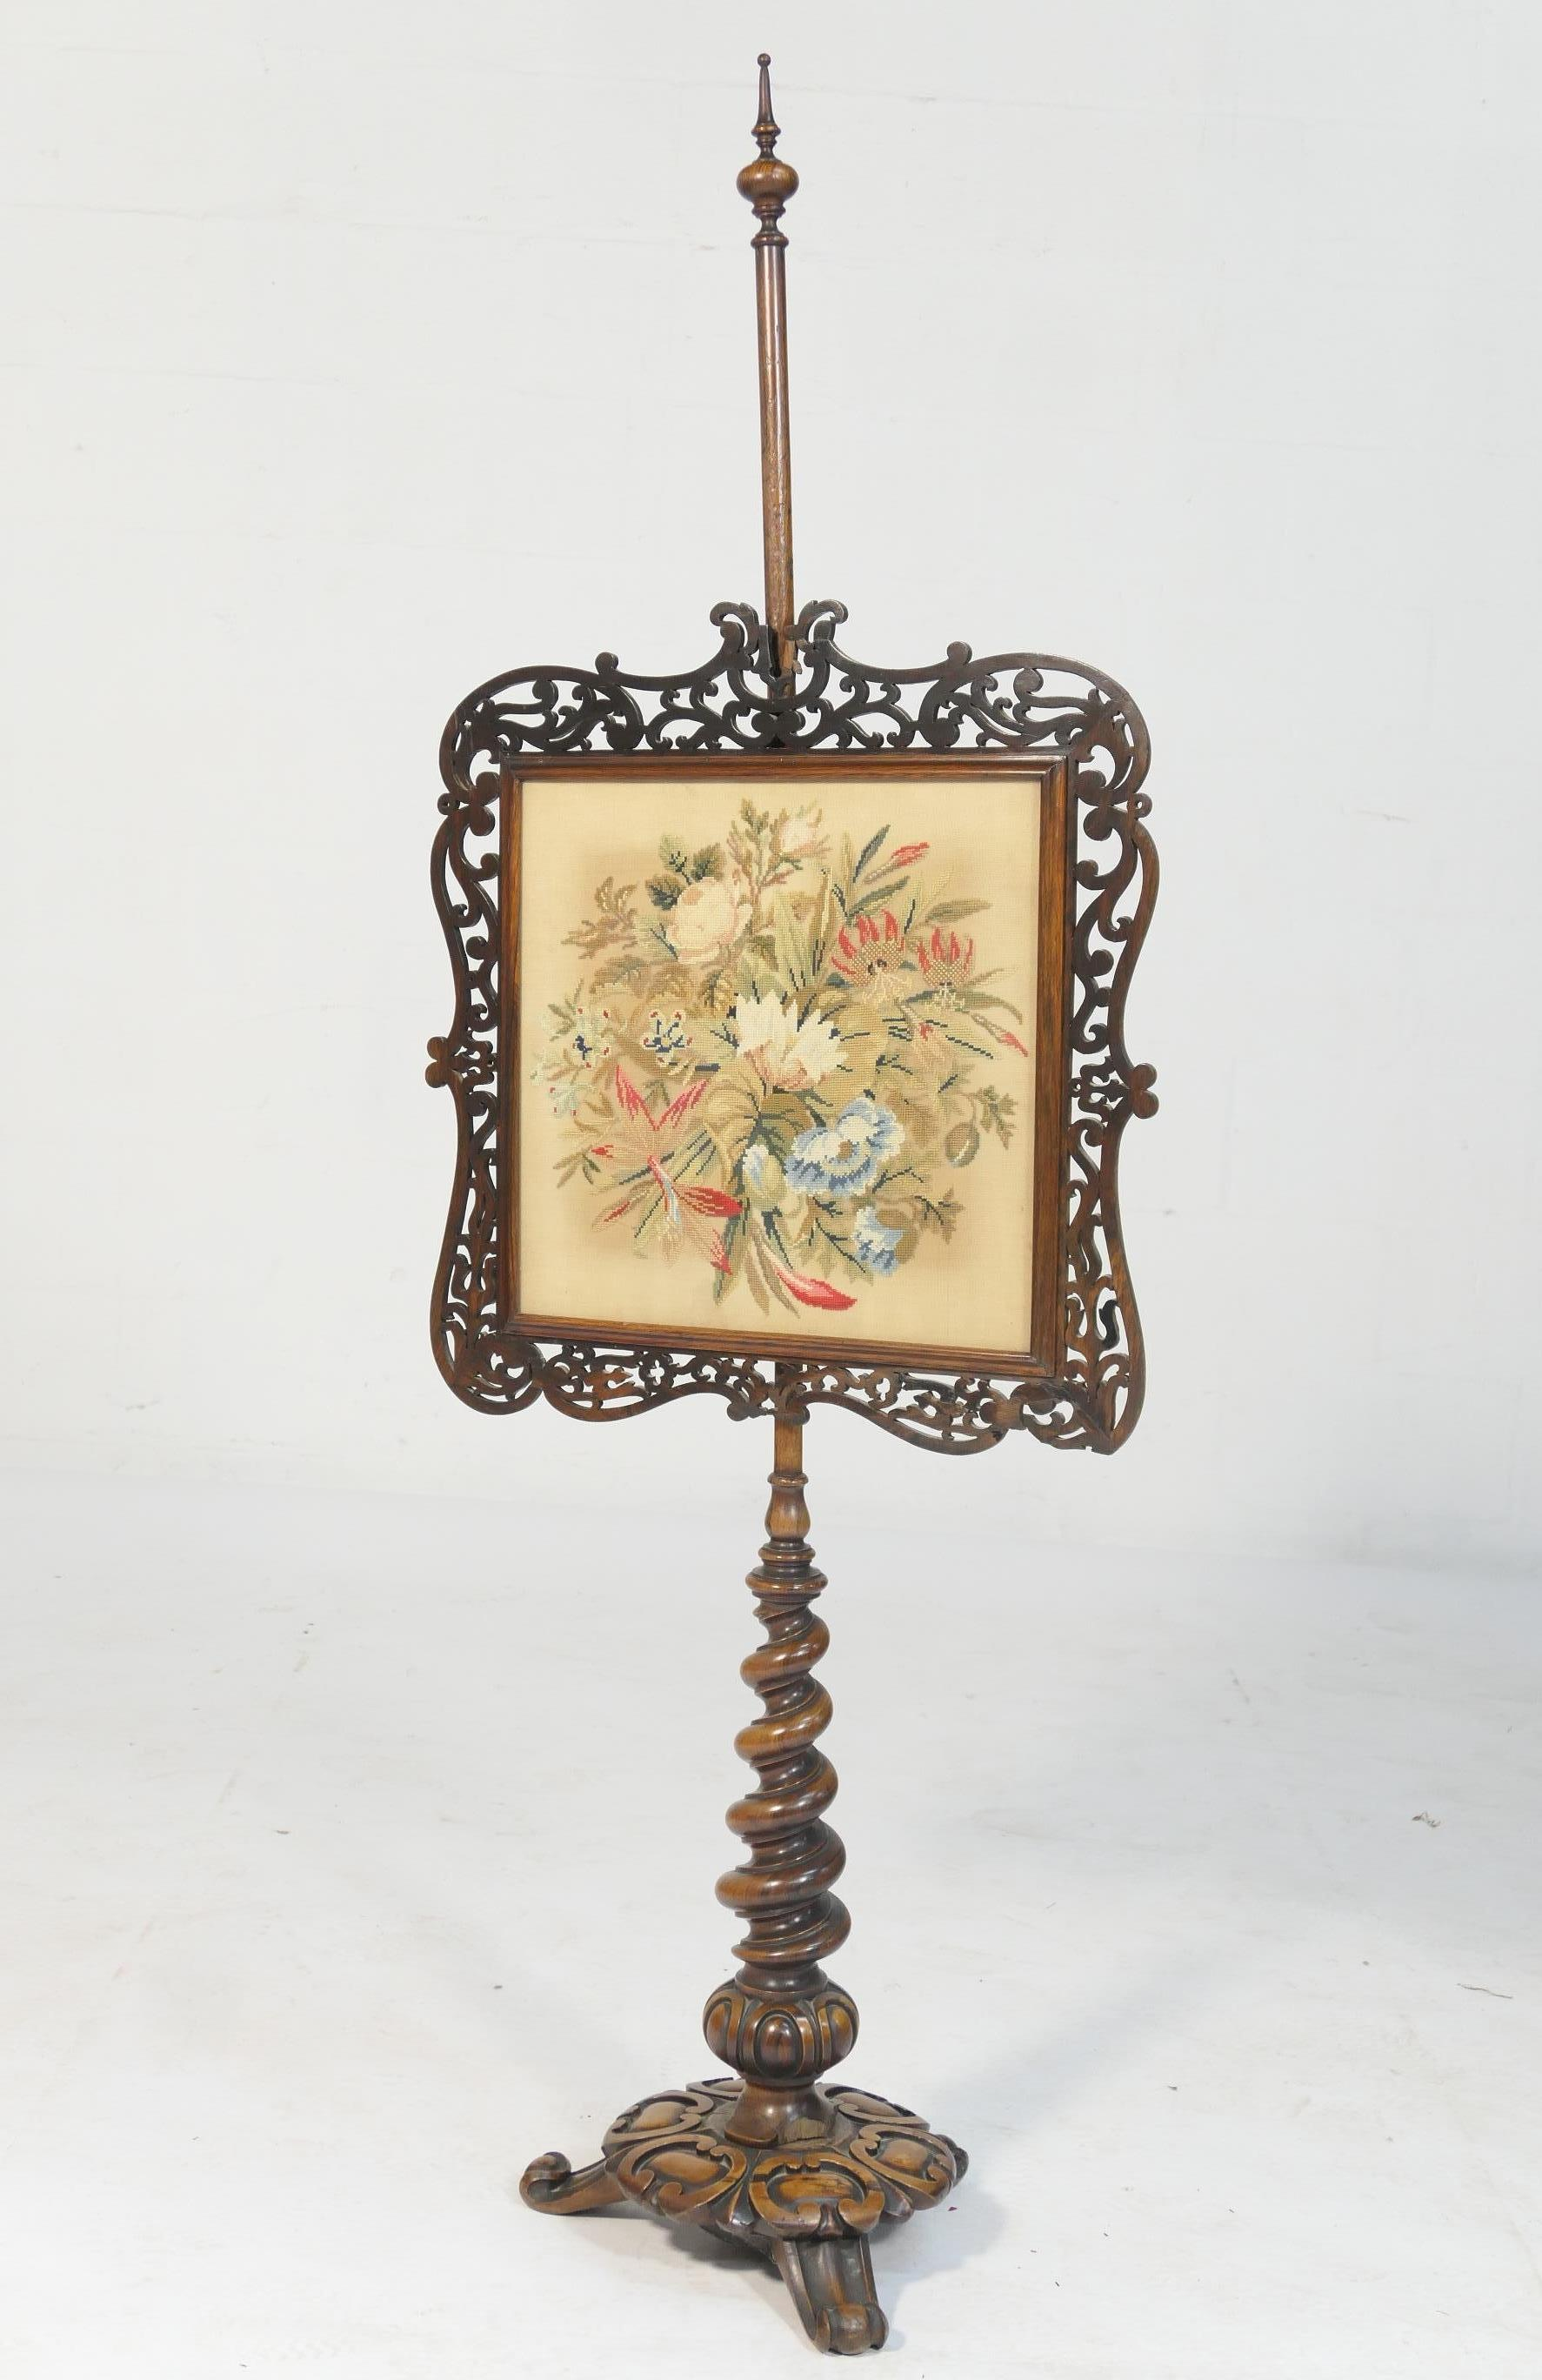 Lot 695 - William IV rosewood pole screen, circa 1835, having a fretwork bordered gross-point needlework